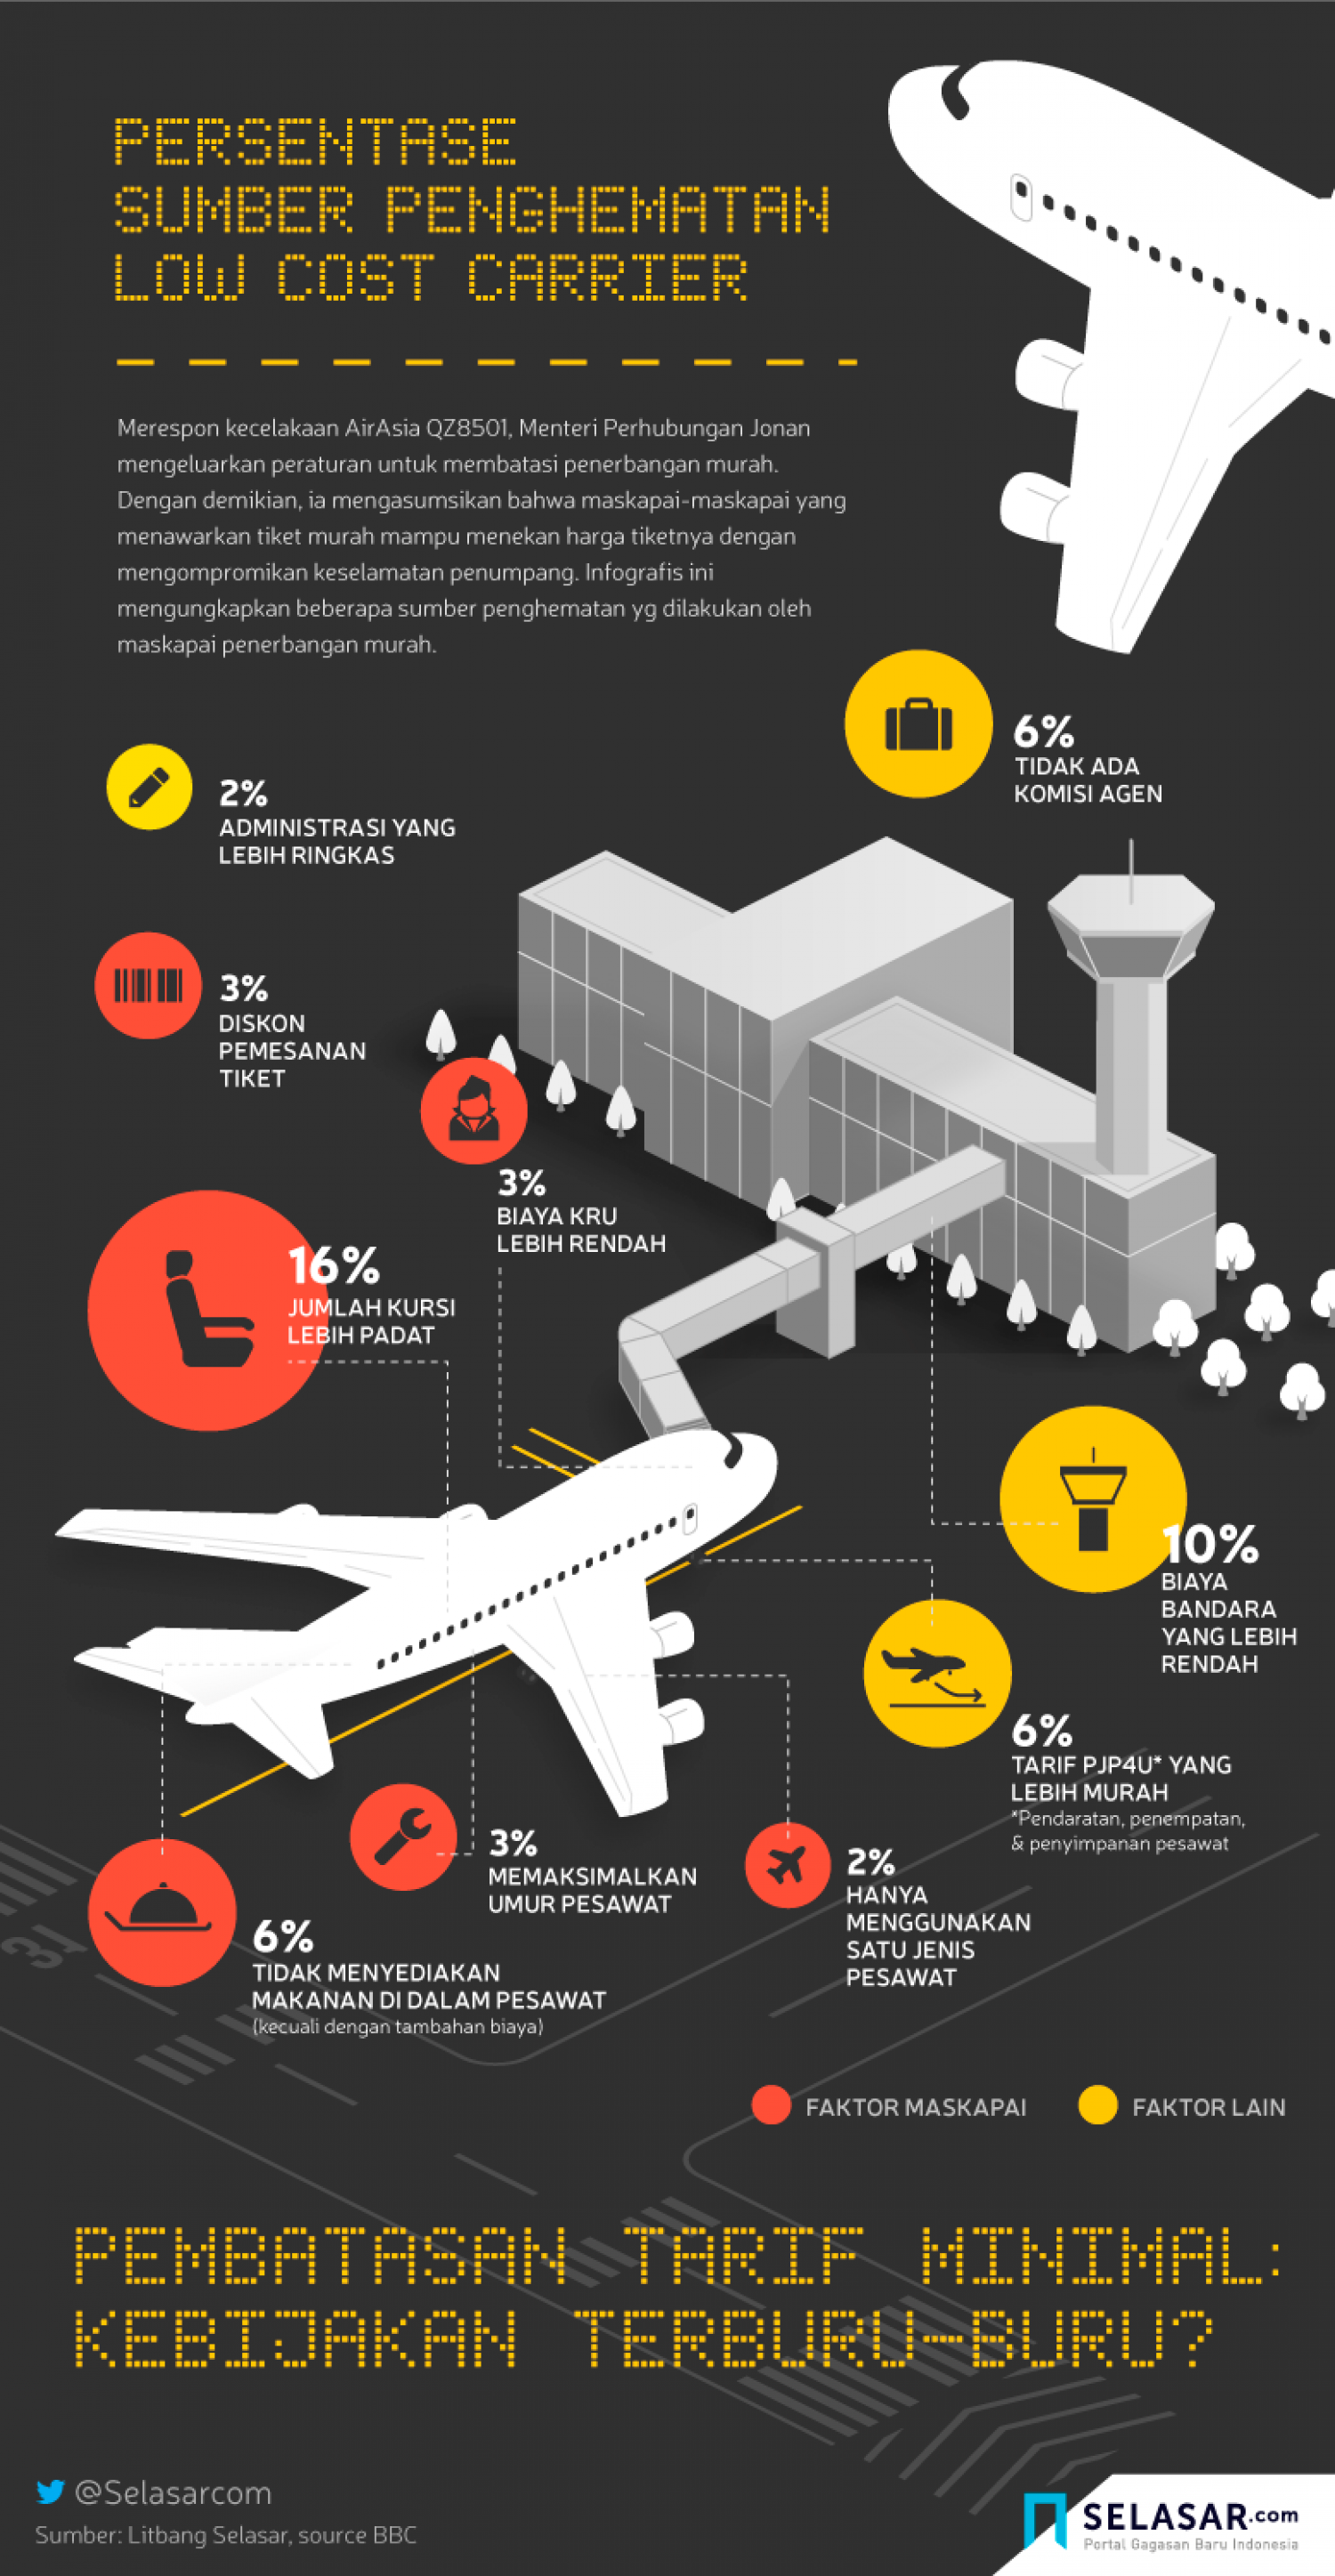 Persentase Sumber Penghematan Low Cost Carrier Infographic